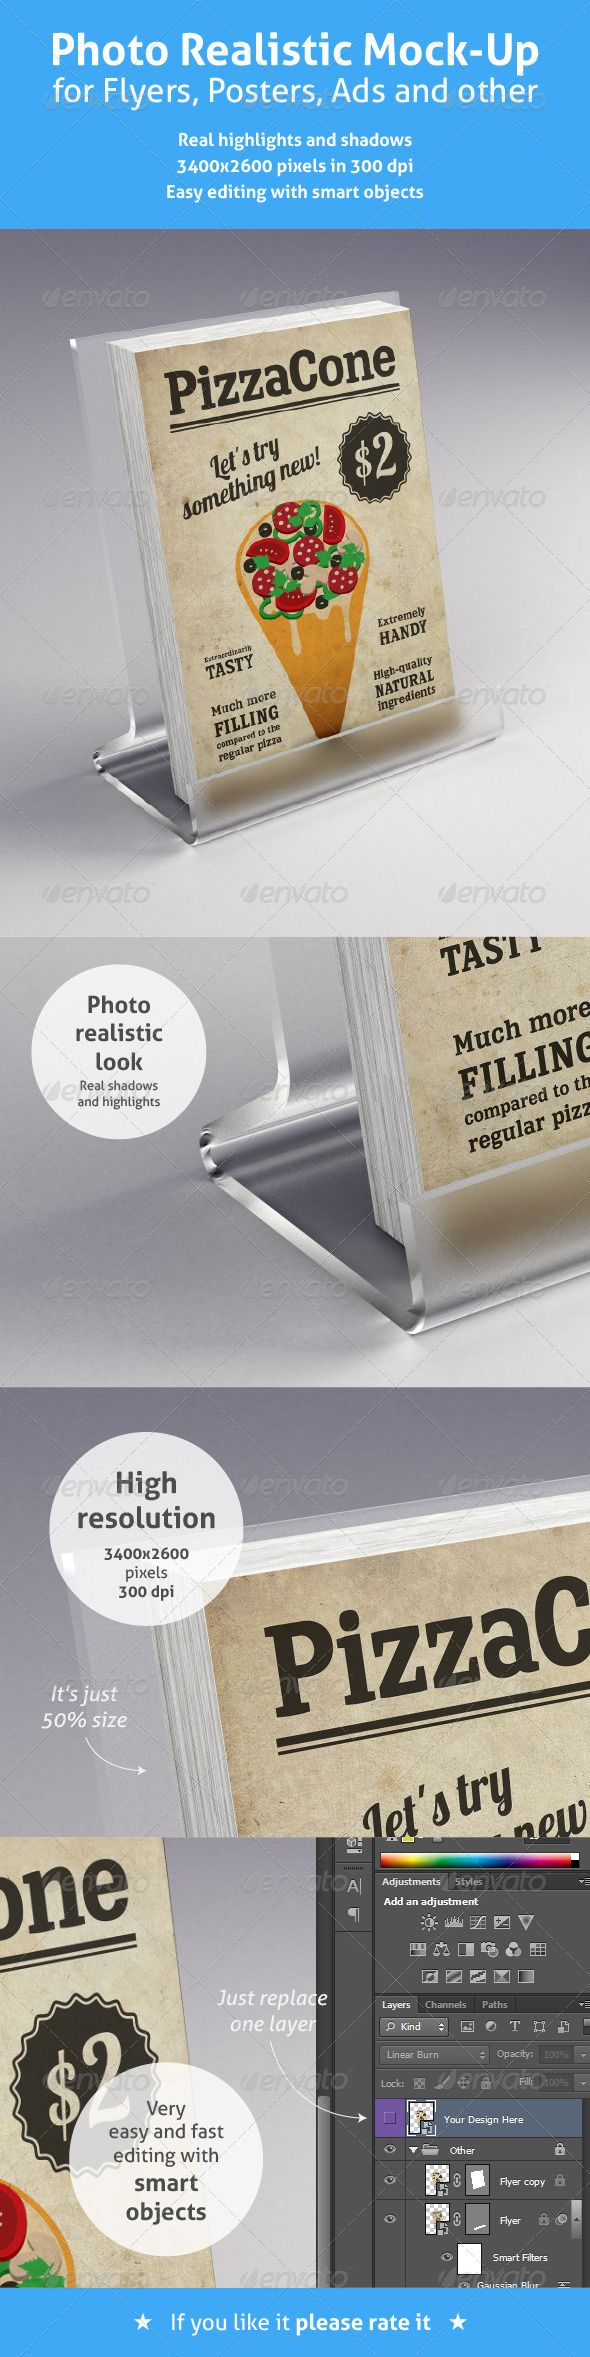 6 poster design photo mockups 57079 - Realistic Mock Up For Flyers Posters And Other